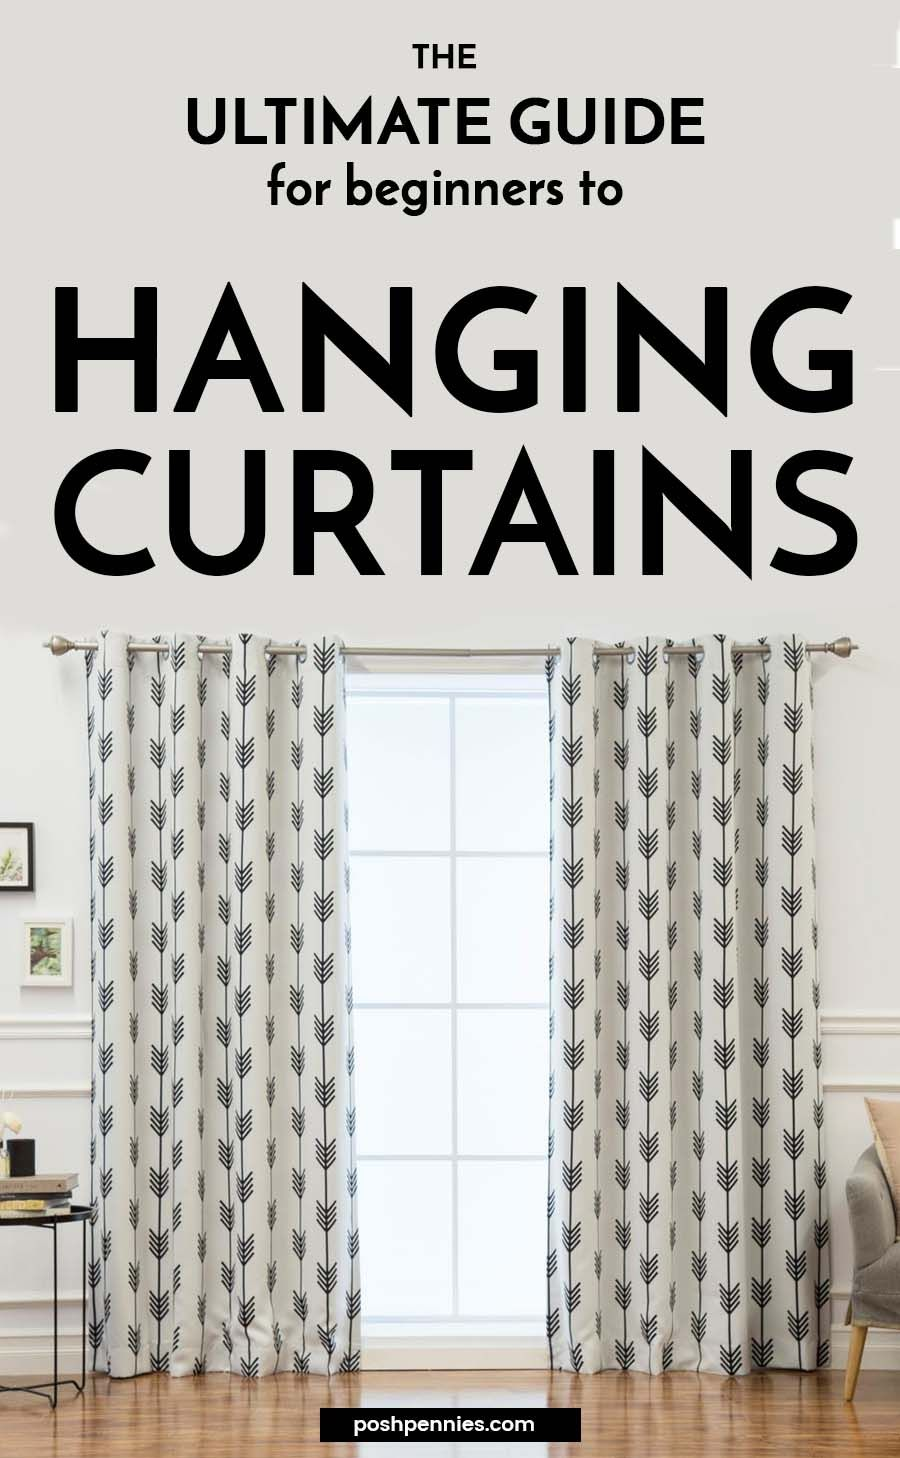 How To Hang Curtains Like An Interior Designer Home Decor Hanging Curtains Decor